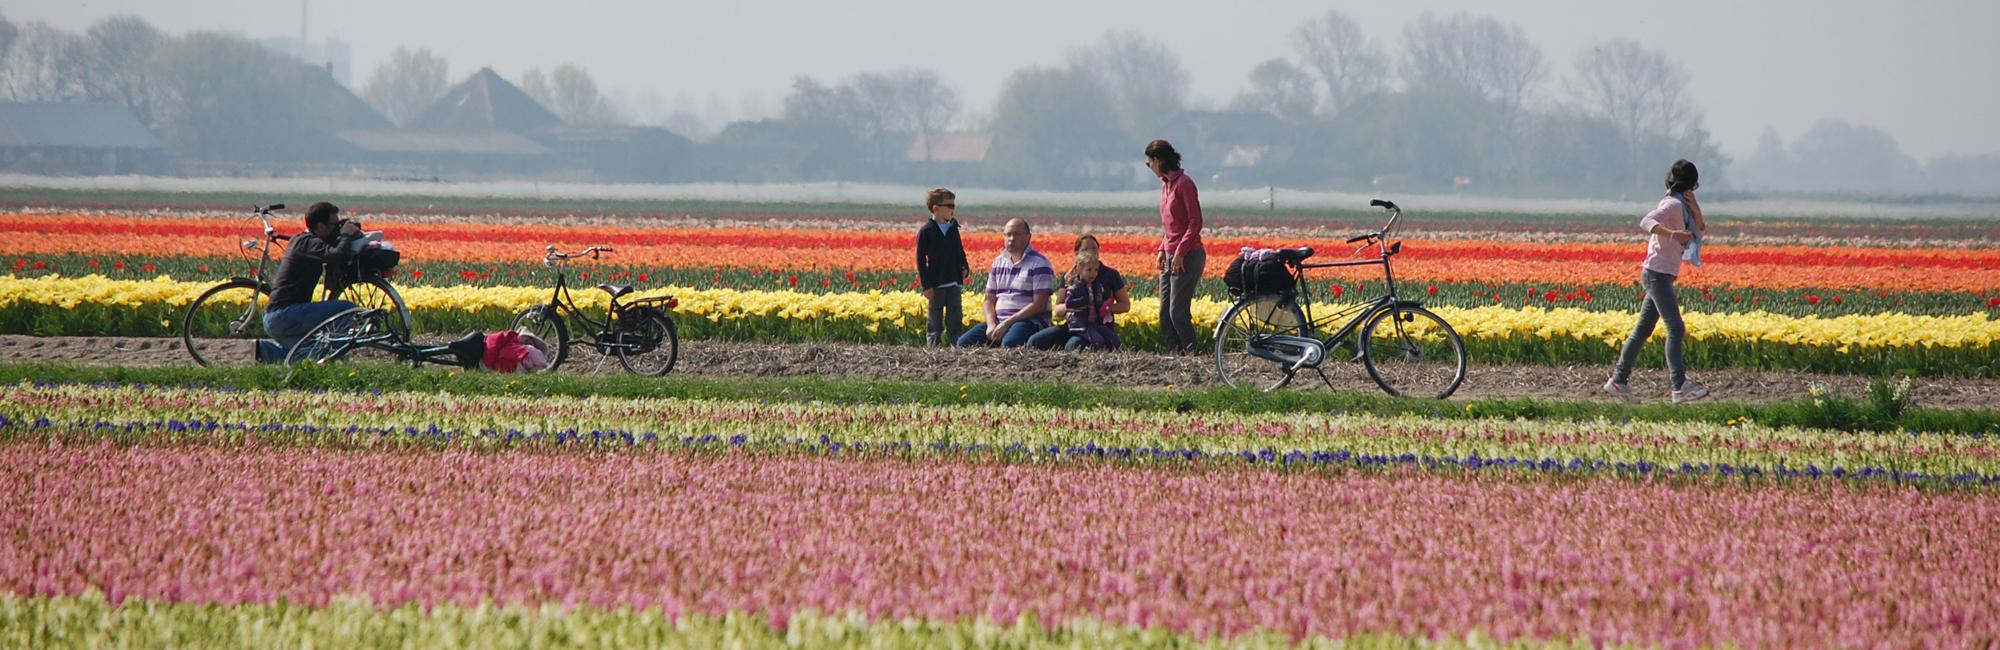 Dutch Bike Tours Radreisen Tulpen Tour